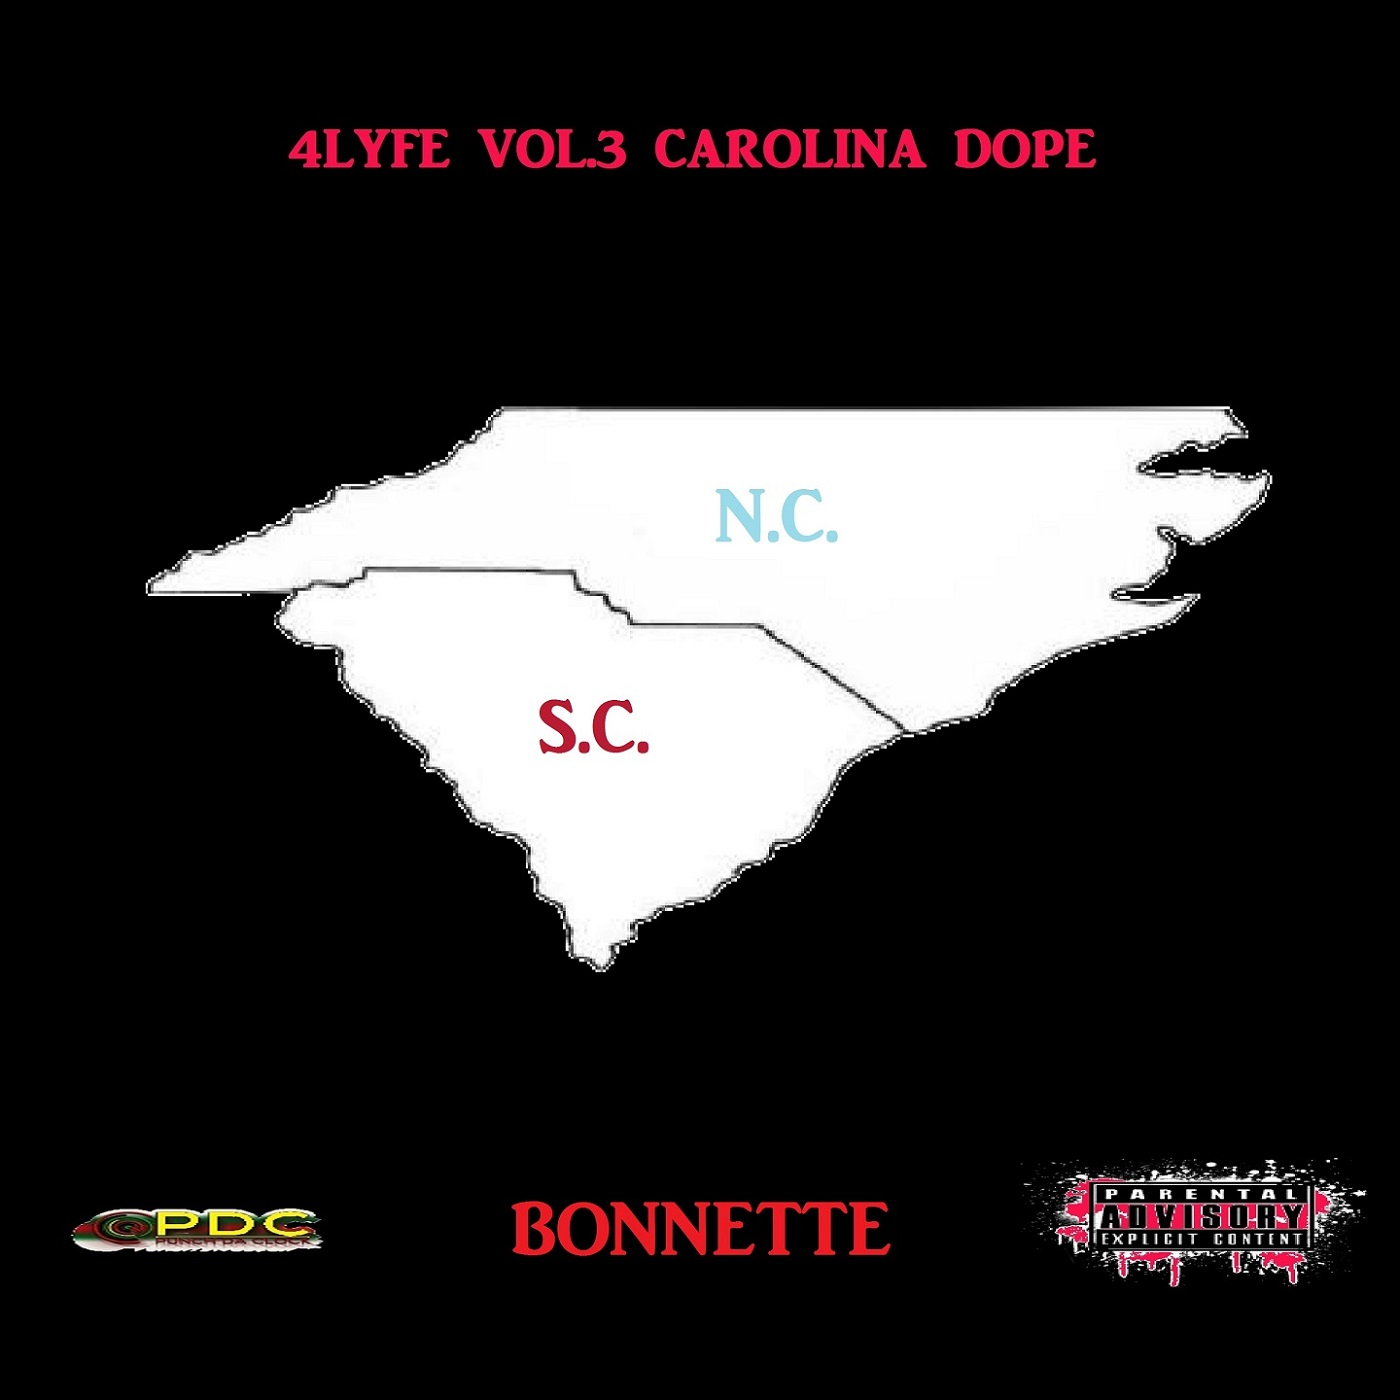 4LYFE VOL 3 Carolina Dope